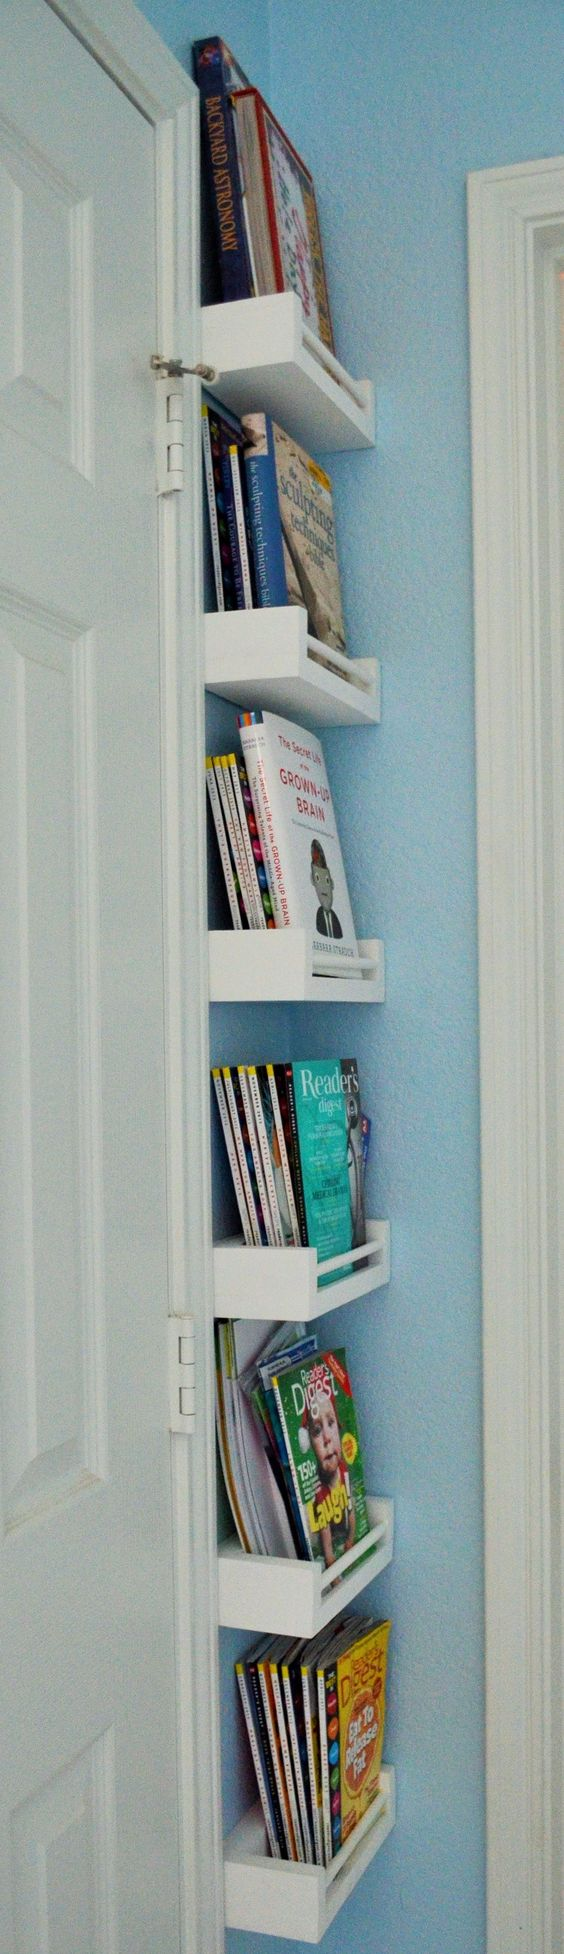 b cherregal f r kleine ecken und hohe decken small corner bookshelves work great for behind. Black Bedroom Furniture Sets. Home Design Ideas